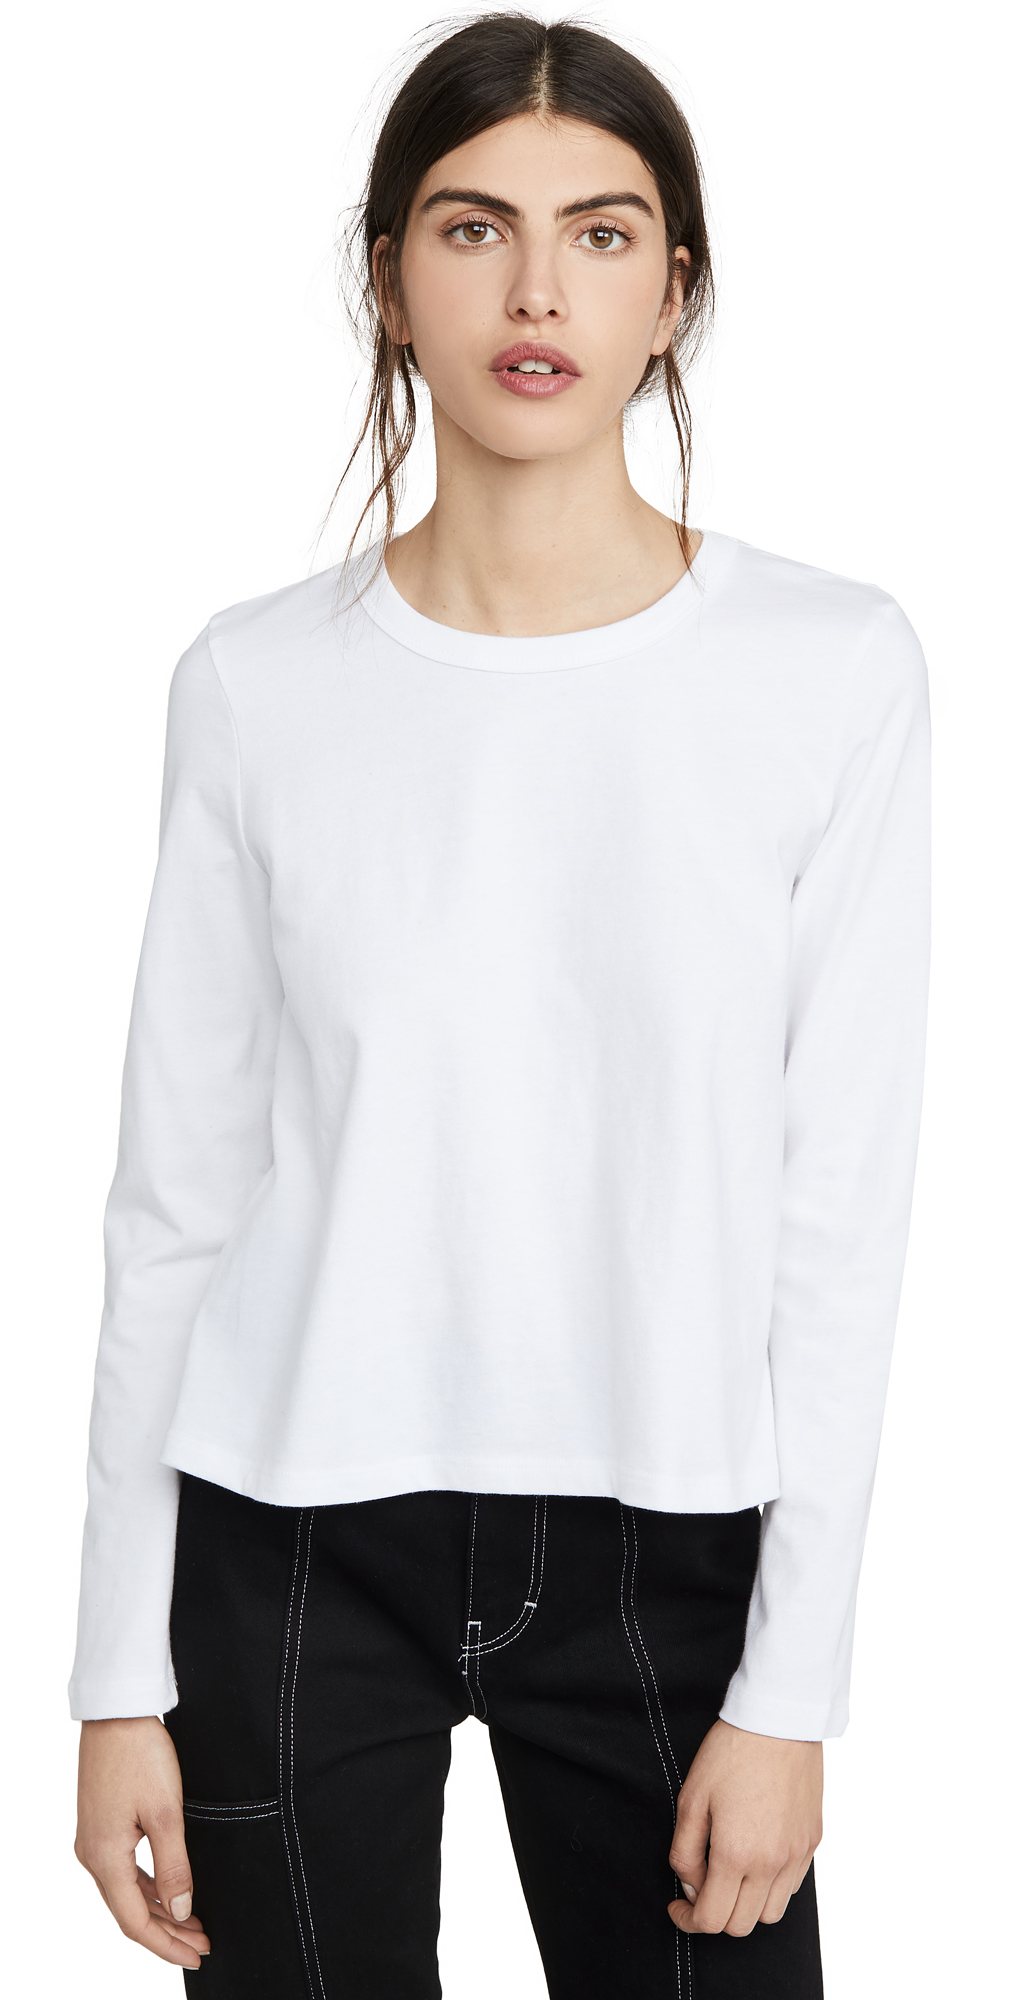 Leset Classic Millie Long Sleeve Top